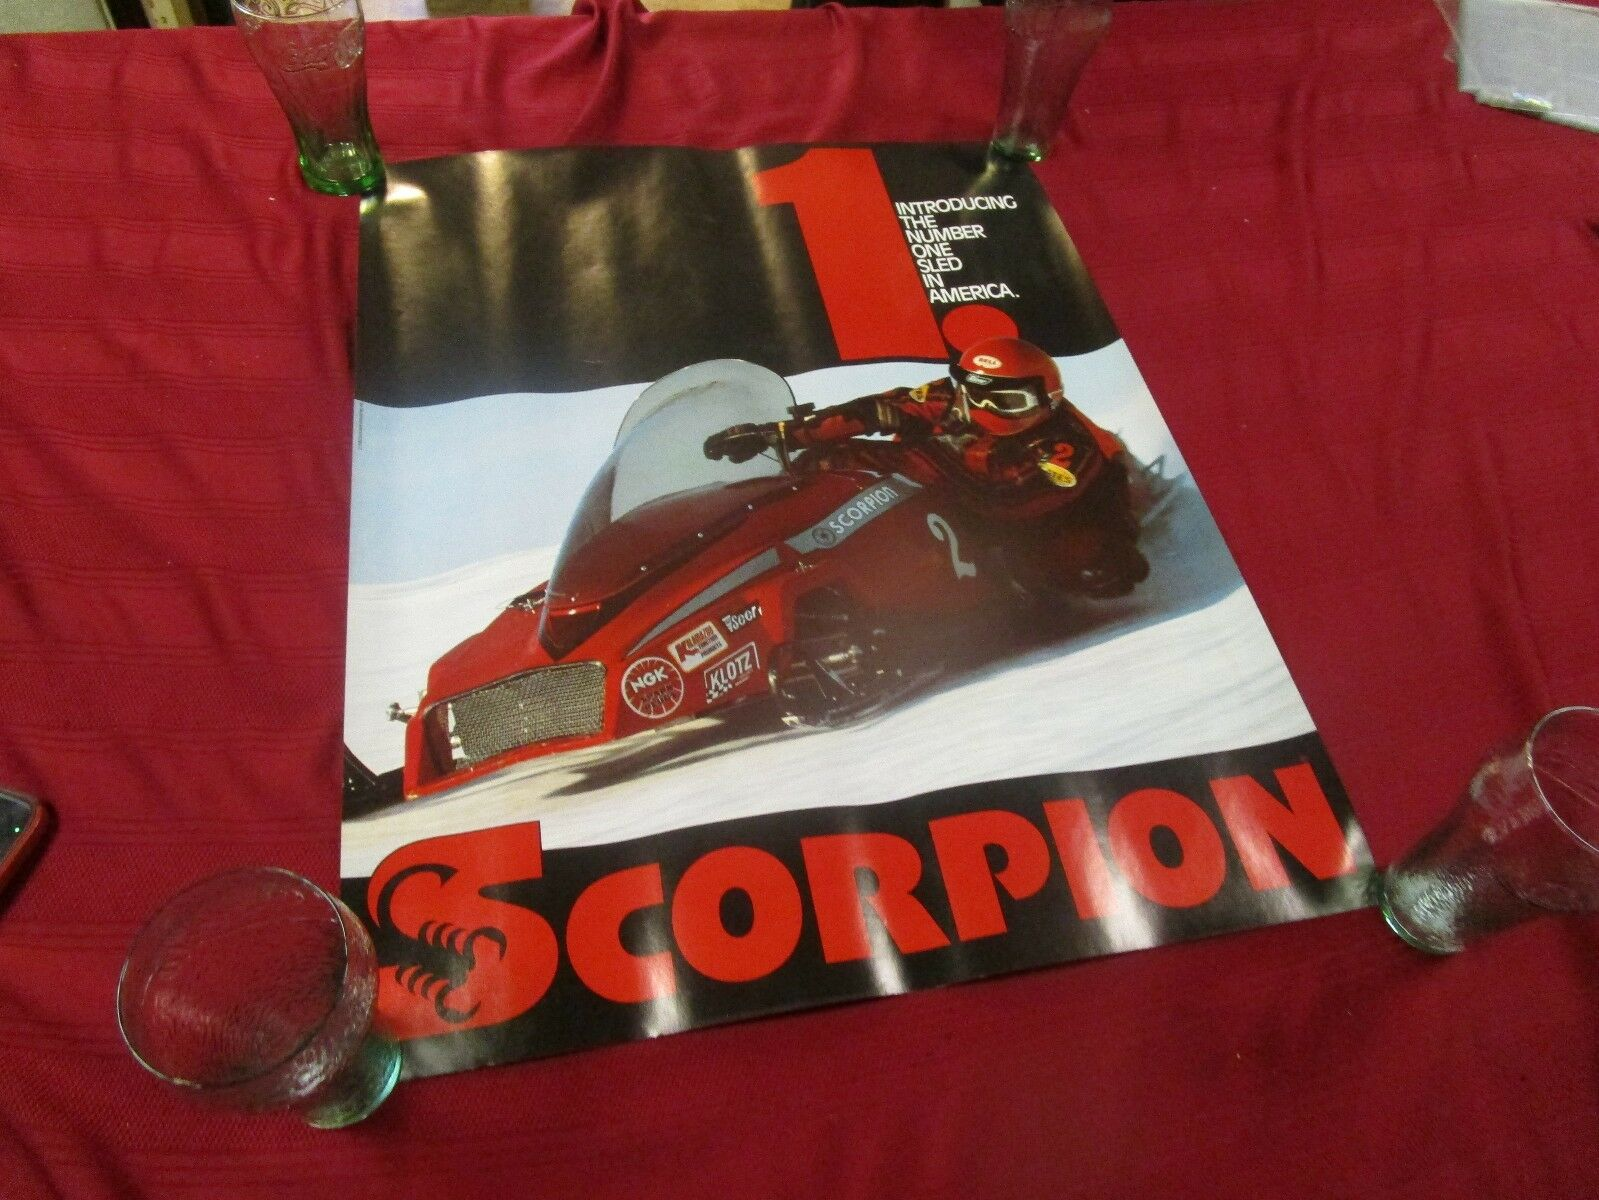 Vintage 1980 Scorpion racing snowmobile poster no rips 22x28